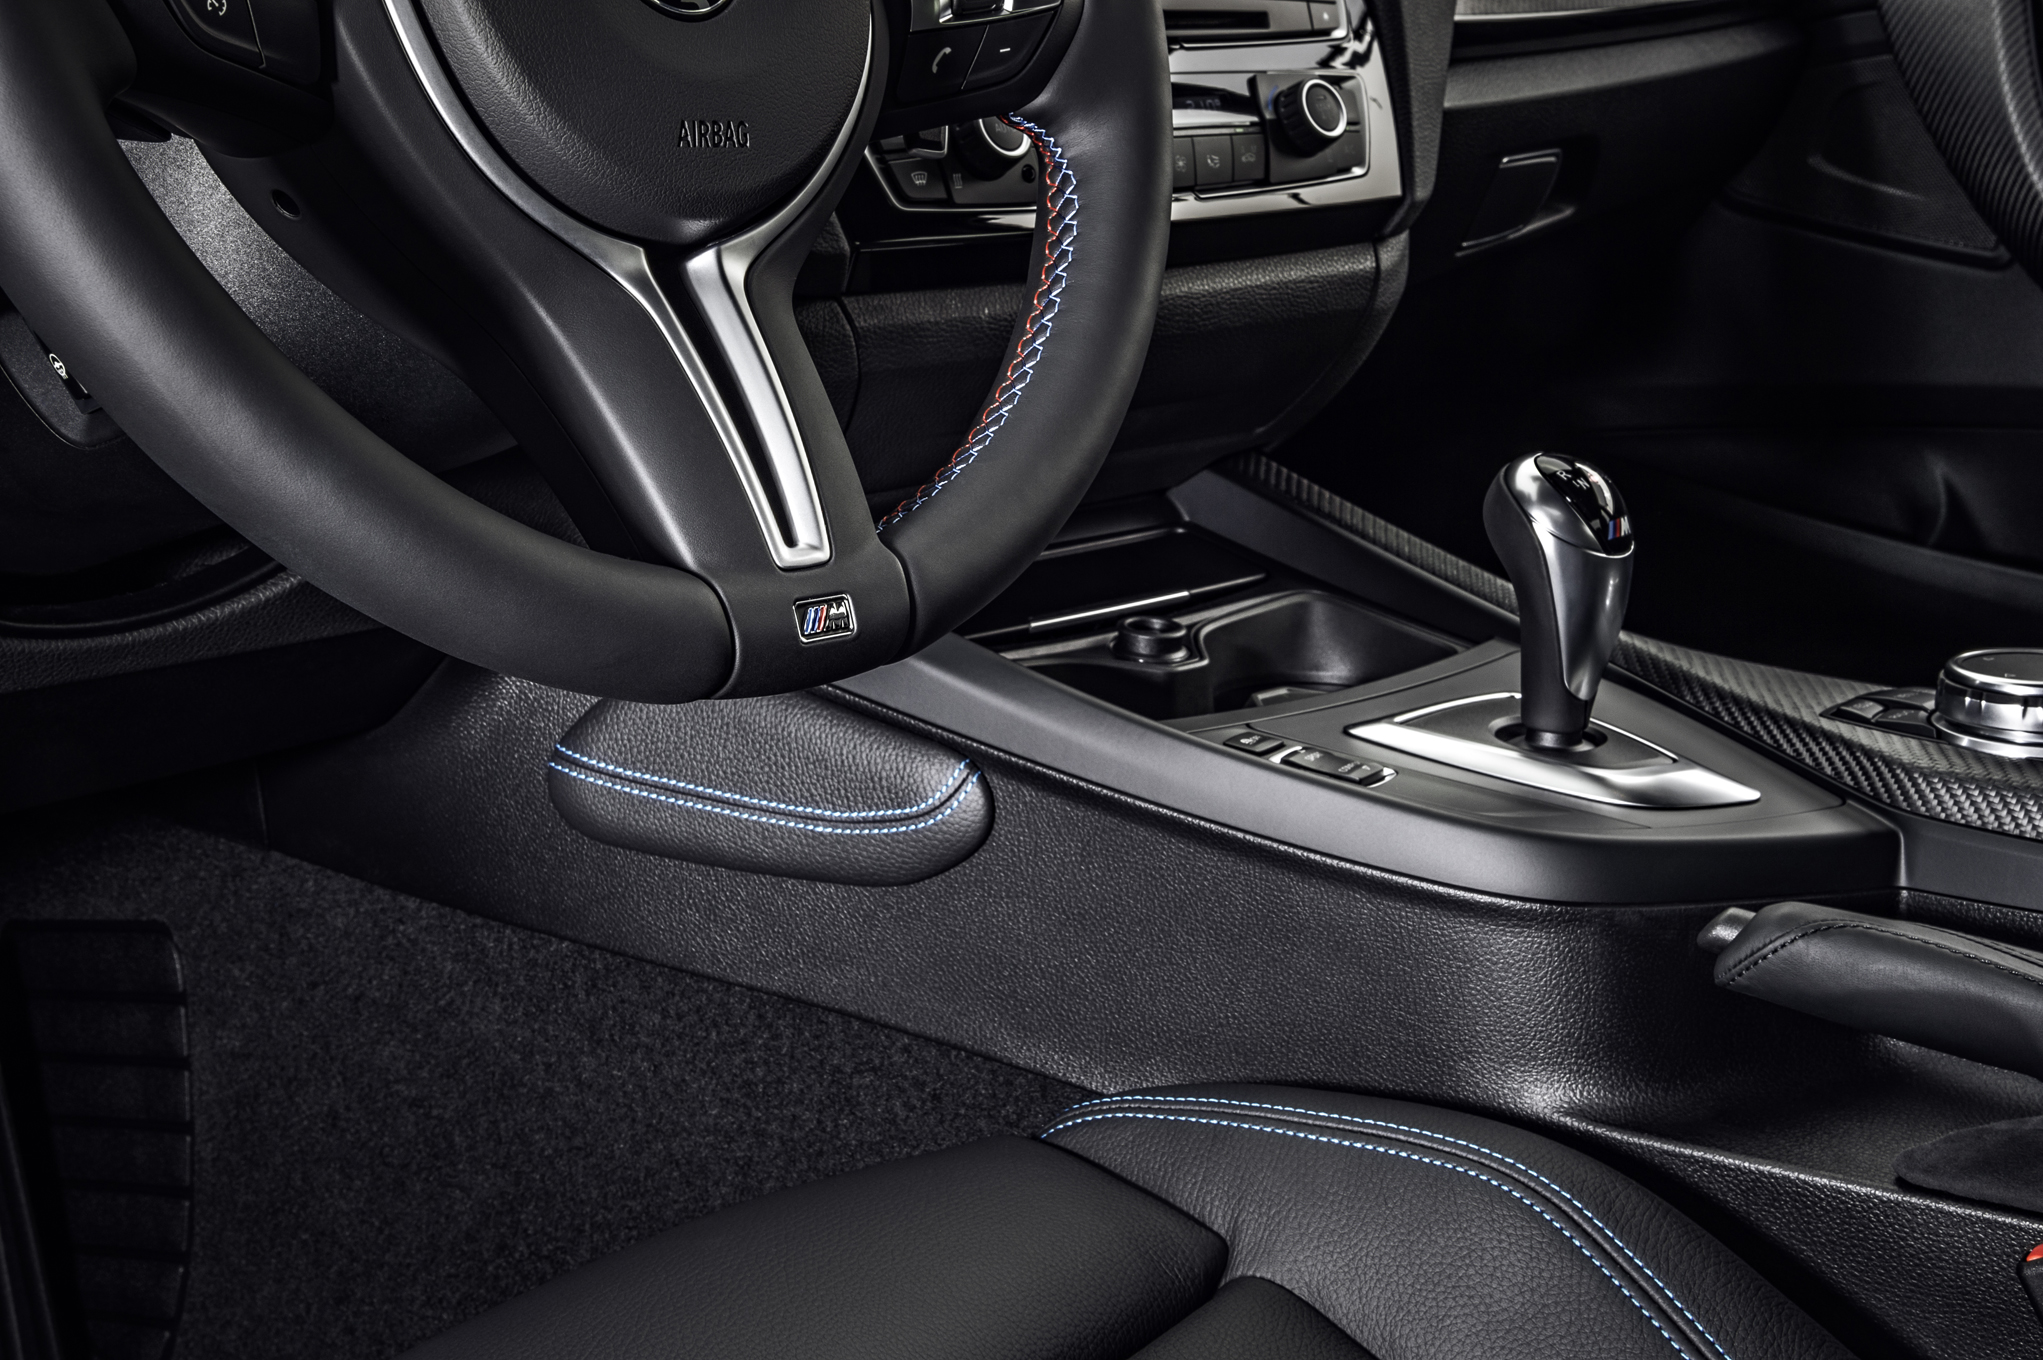 2016 BMW M2 Interior View Center Console (Photo 23 of 61)